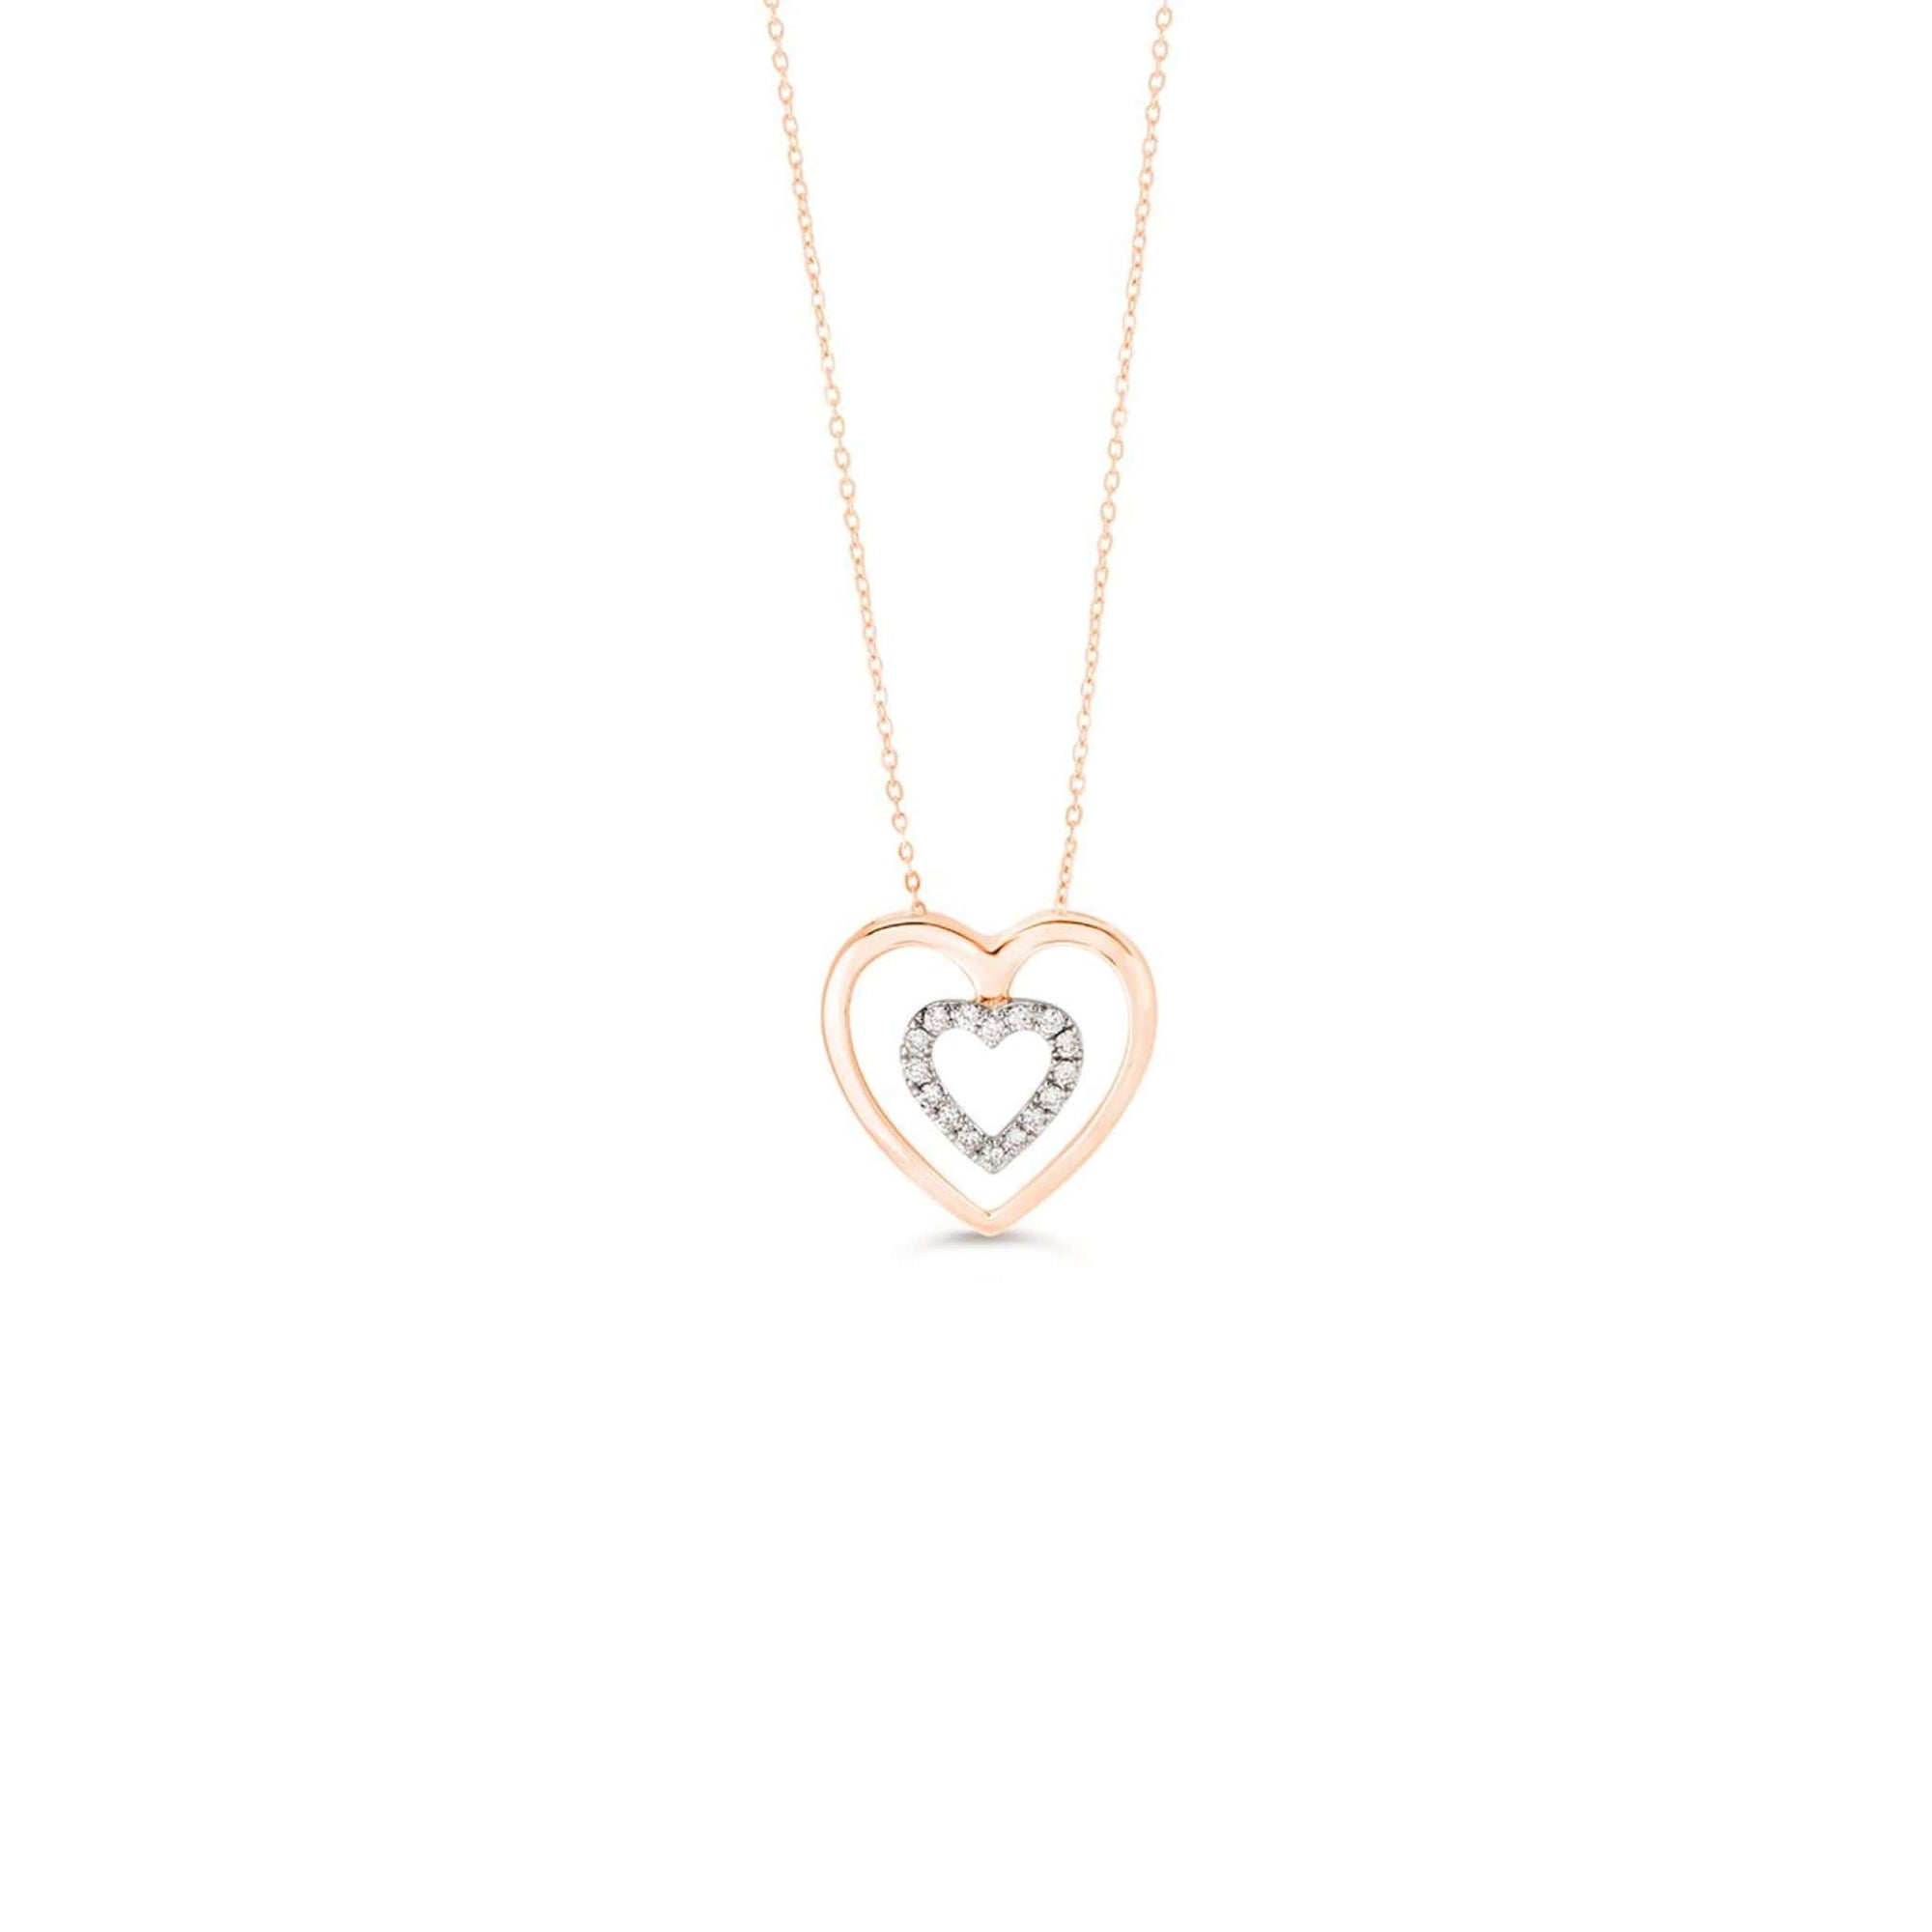 10K Rose Gold Diamond Heart Necklace at Arman's Jewellers